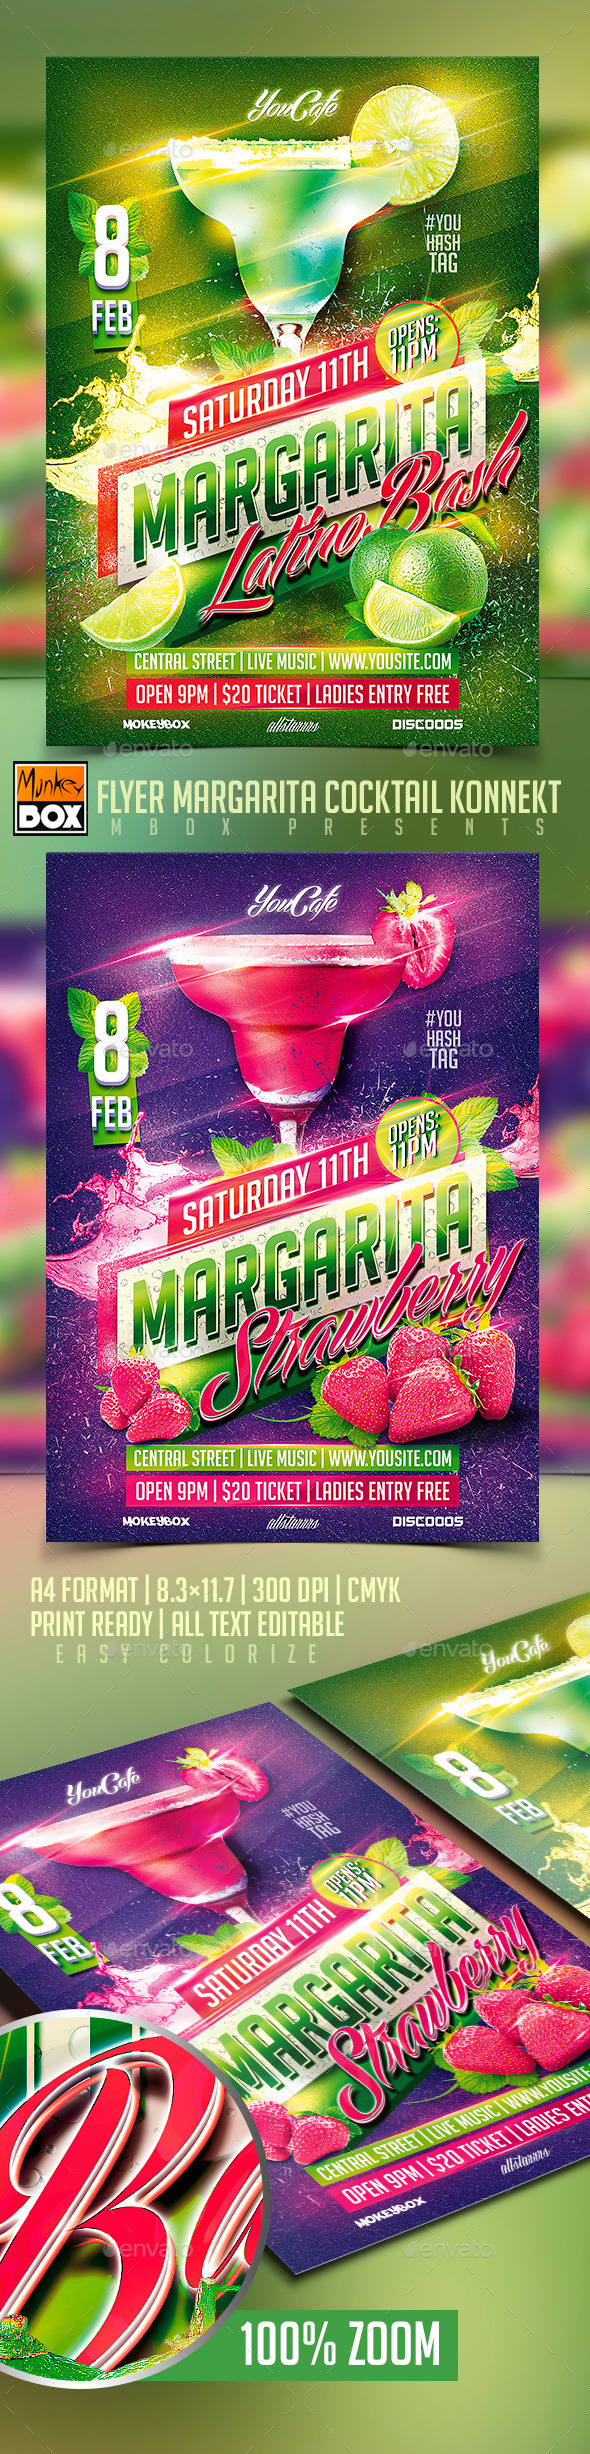 Flyer Margarita Cocktail Konnekt - Flyers Print Templates